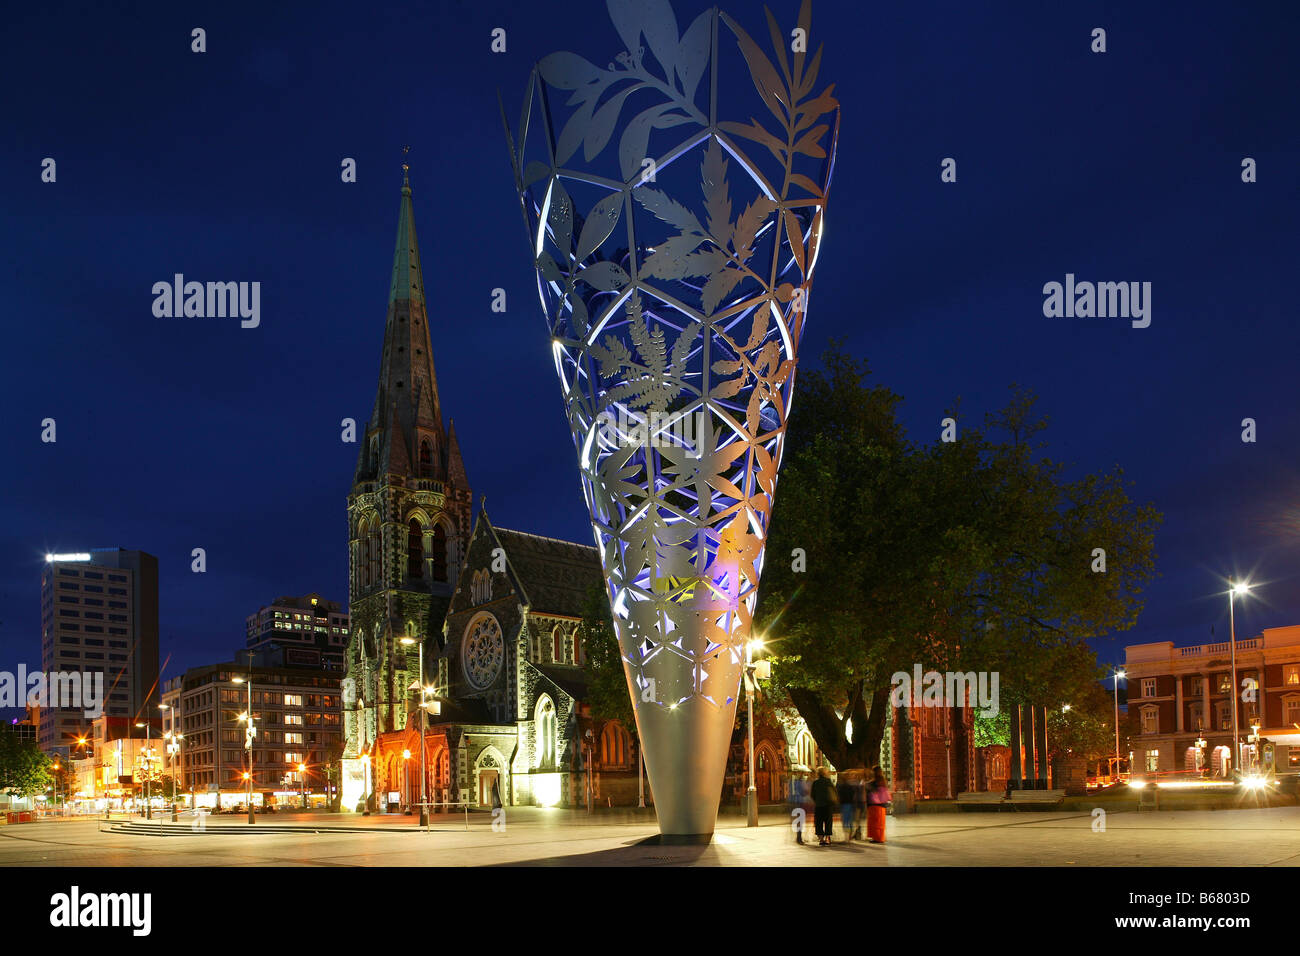 Sculpture titled Chalice by Neil Dawson erected to celebrate 150th anniversary of the city, Christchurch, New Zealand - Stock Image